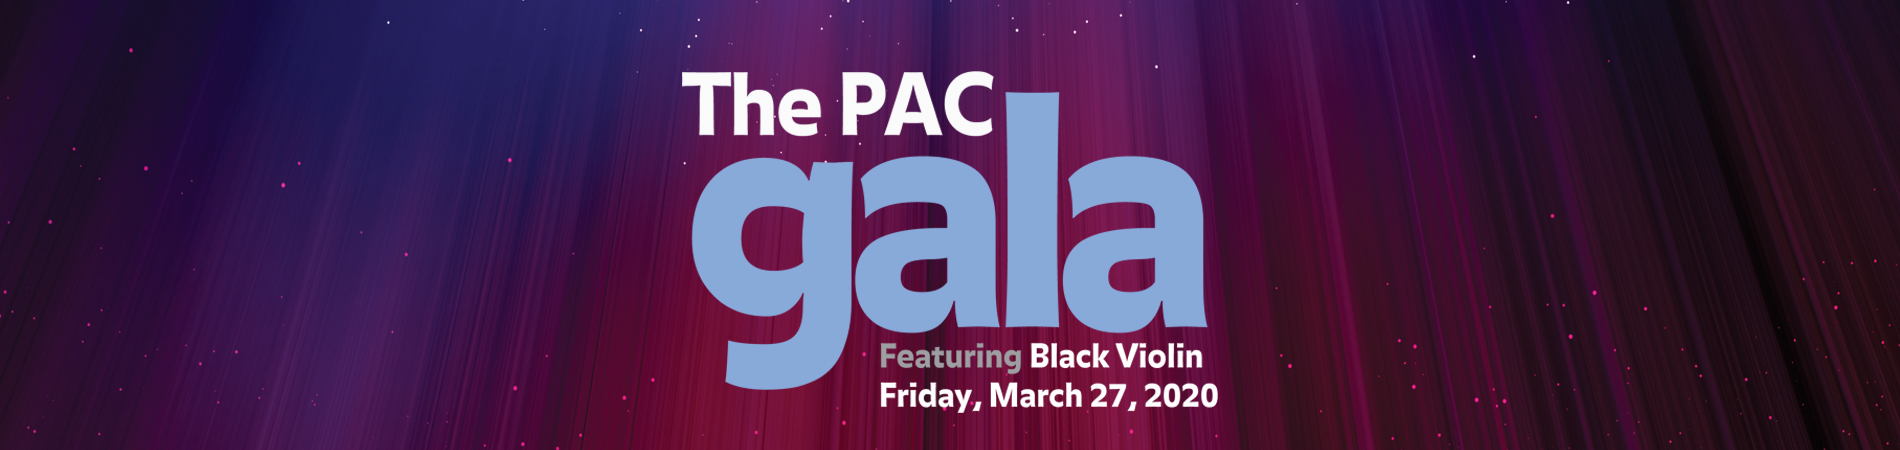 The PAC gala featuring Black Violin Friday March 27, 2020